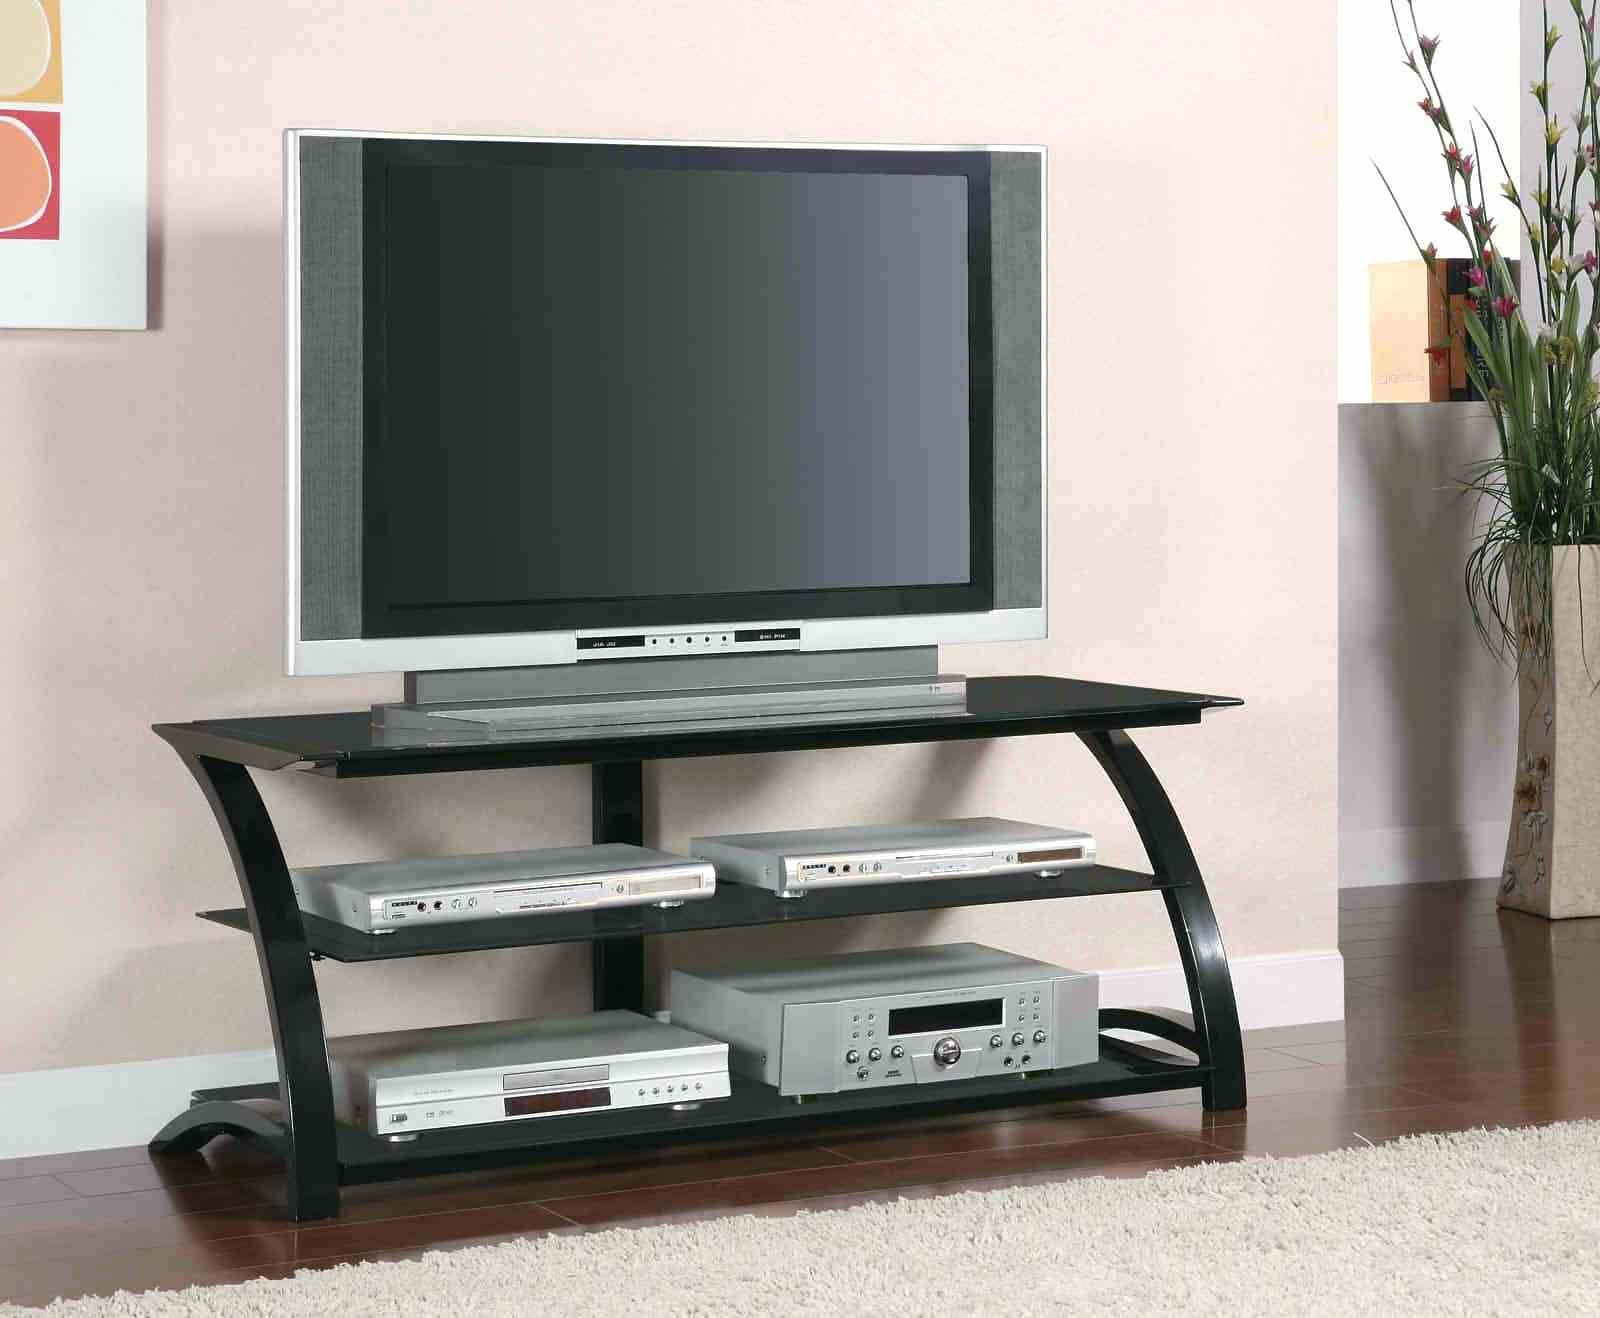 Tv Stand : 34 View In Gallery Real Flame Fresno 71 Inch Gel With Regard To Trendy Tv Stands (View 8 of 15)